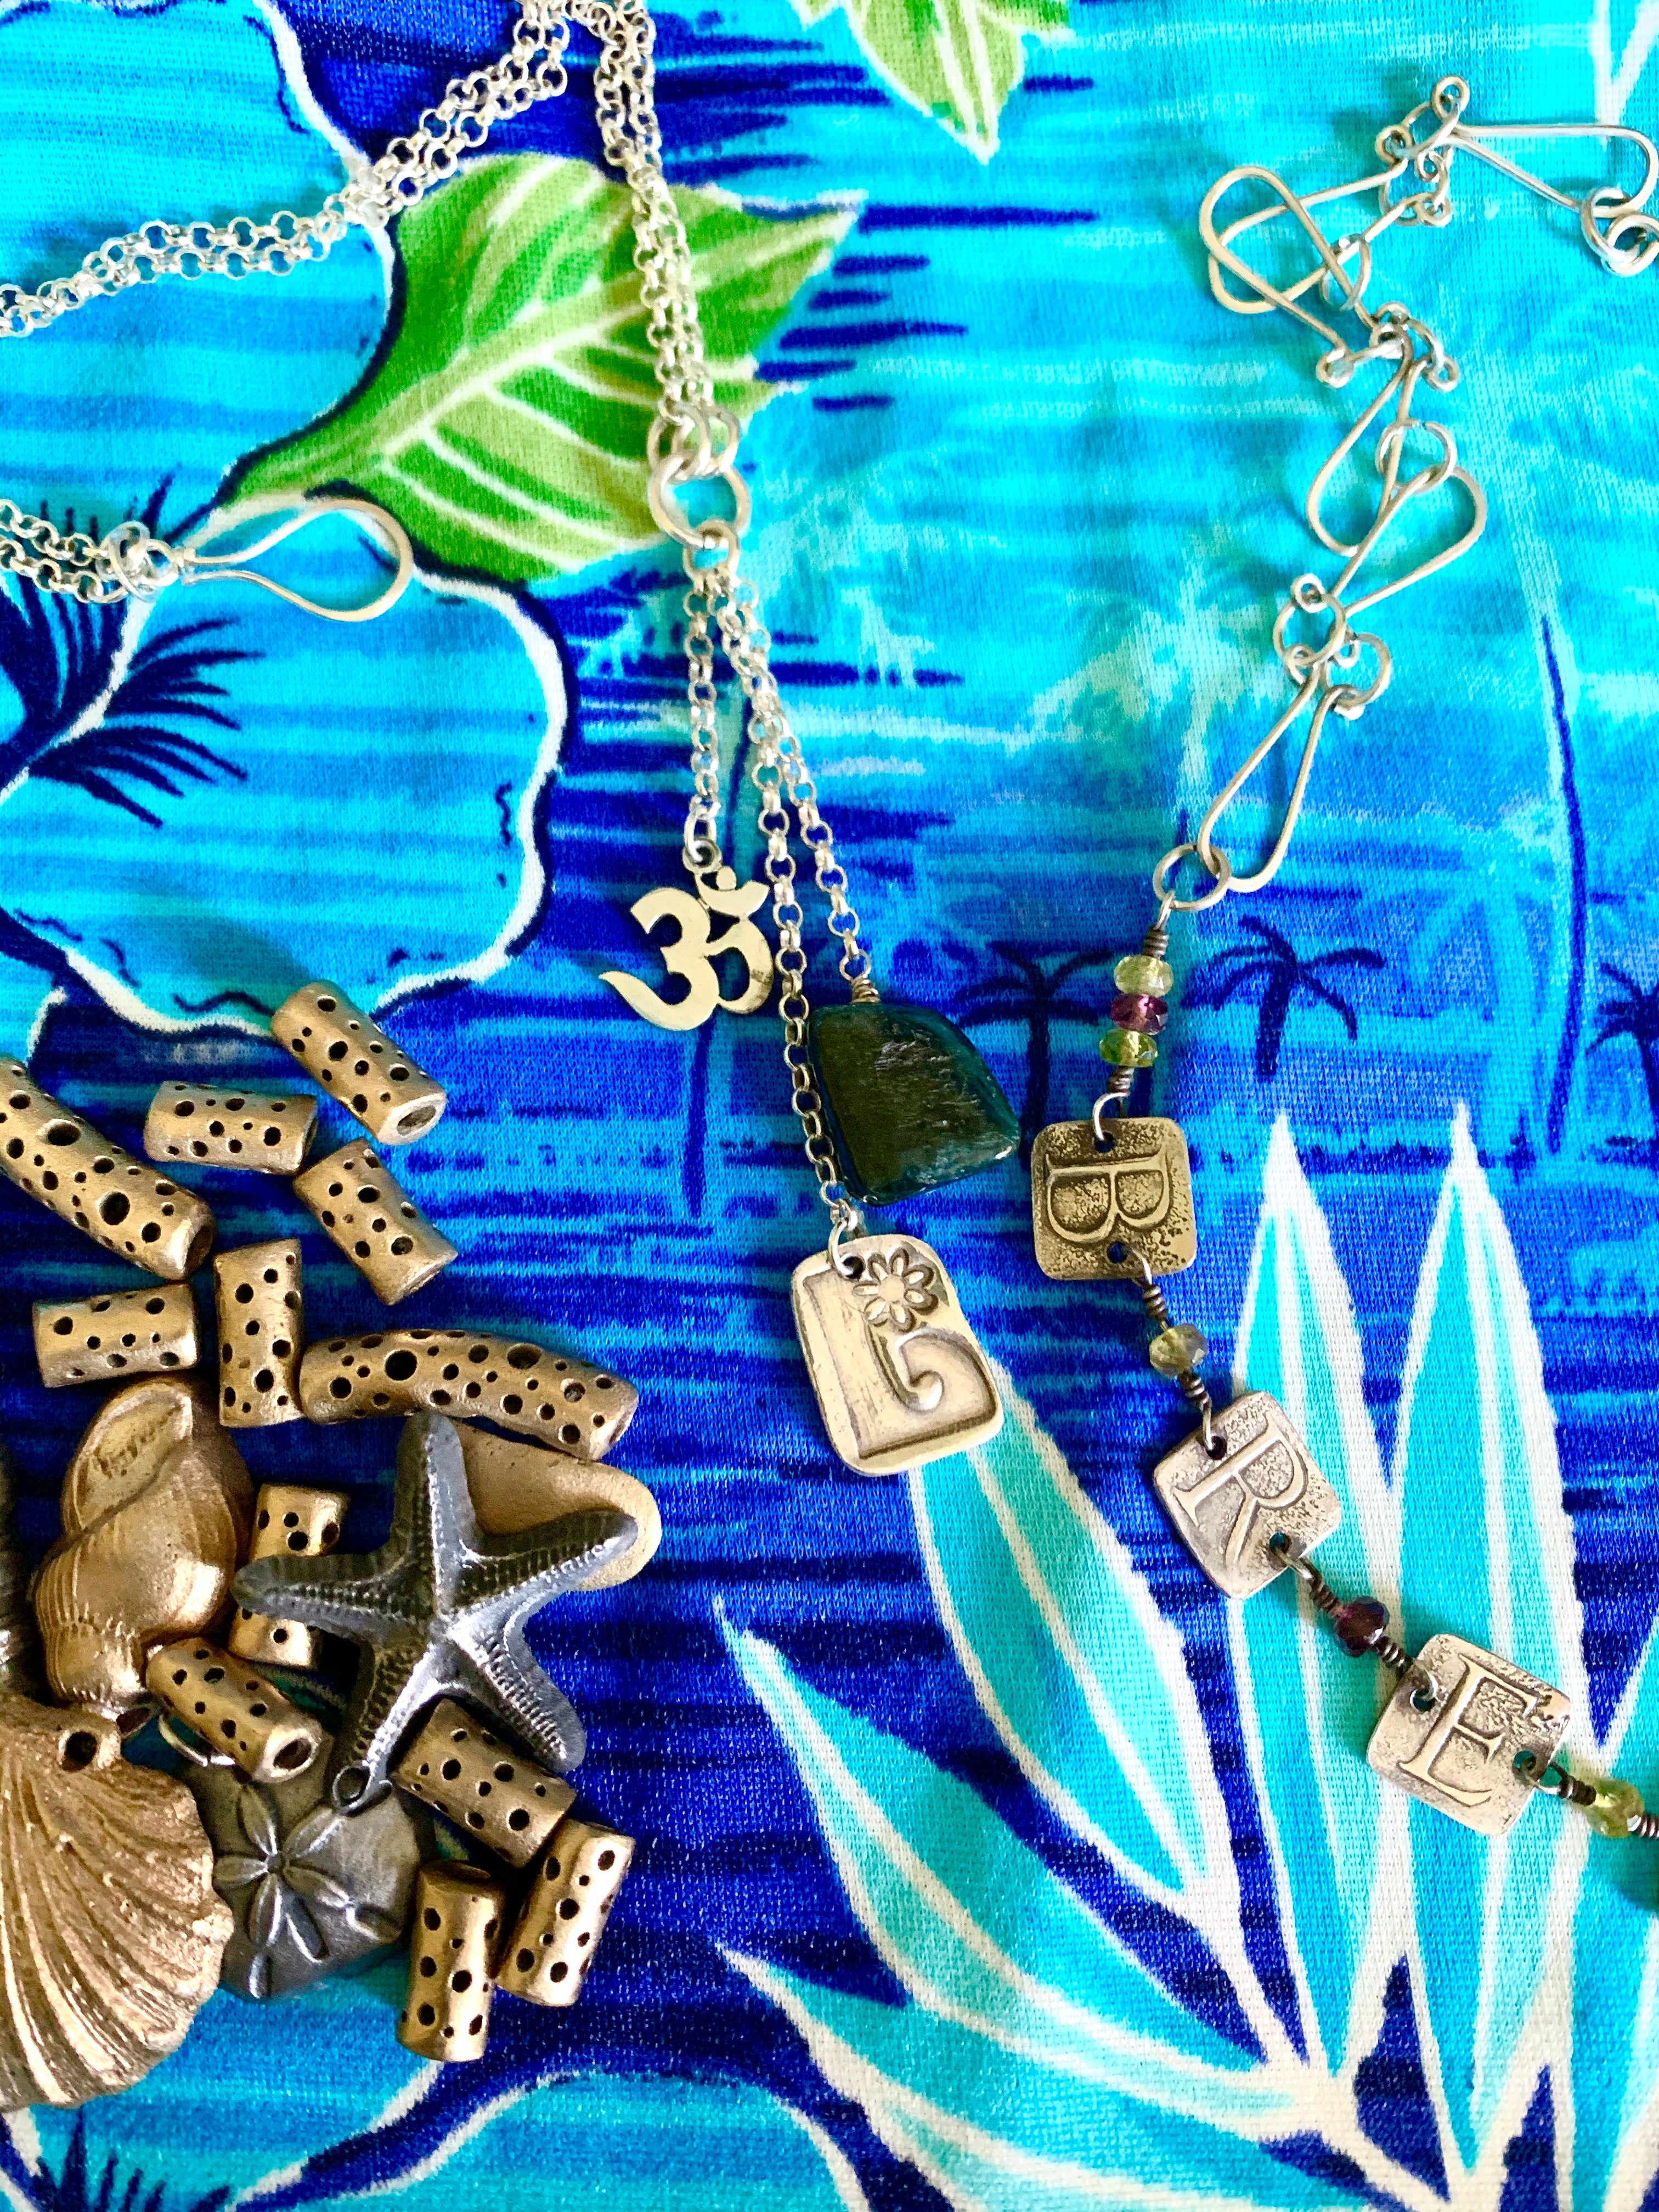 Bronze beads, tropical blues and yoga style necklaces